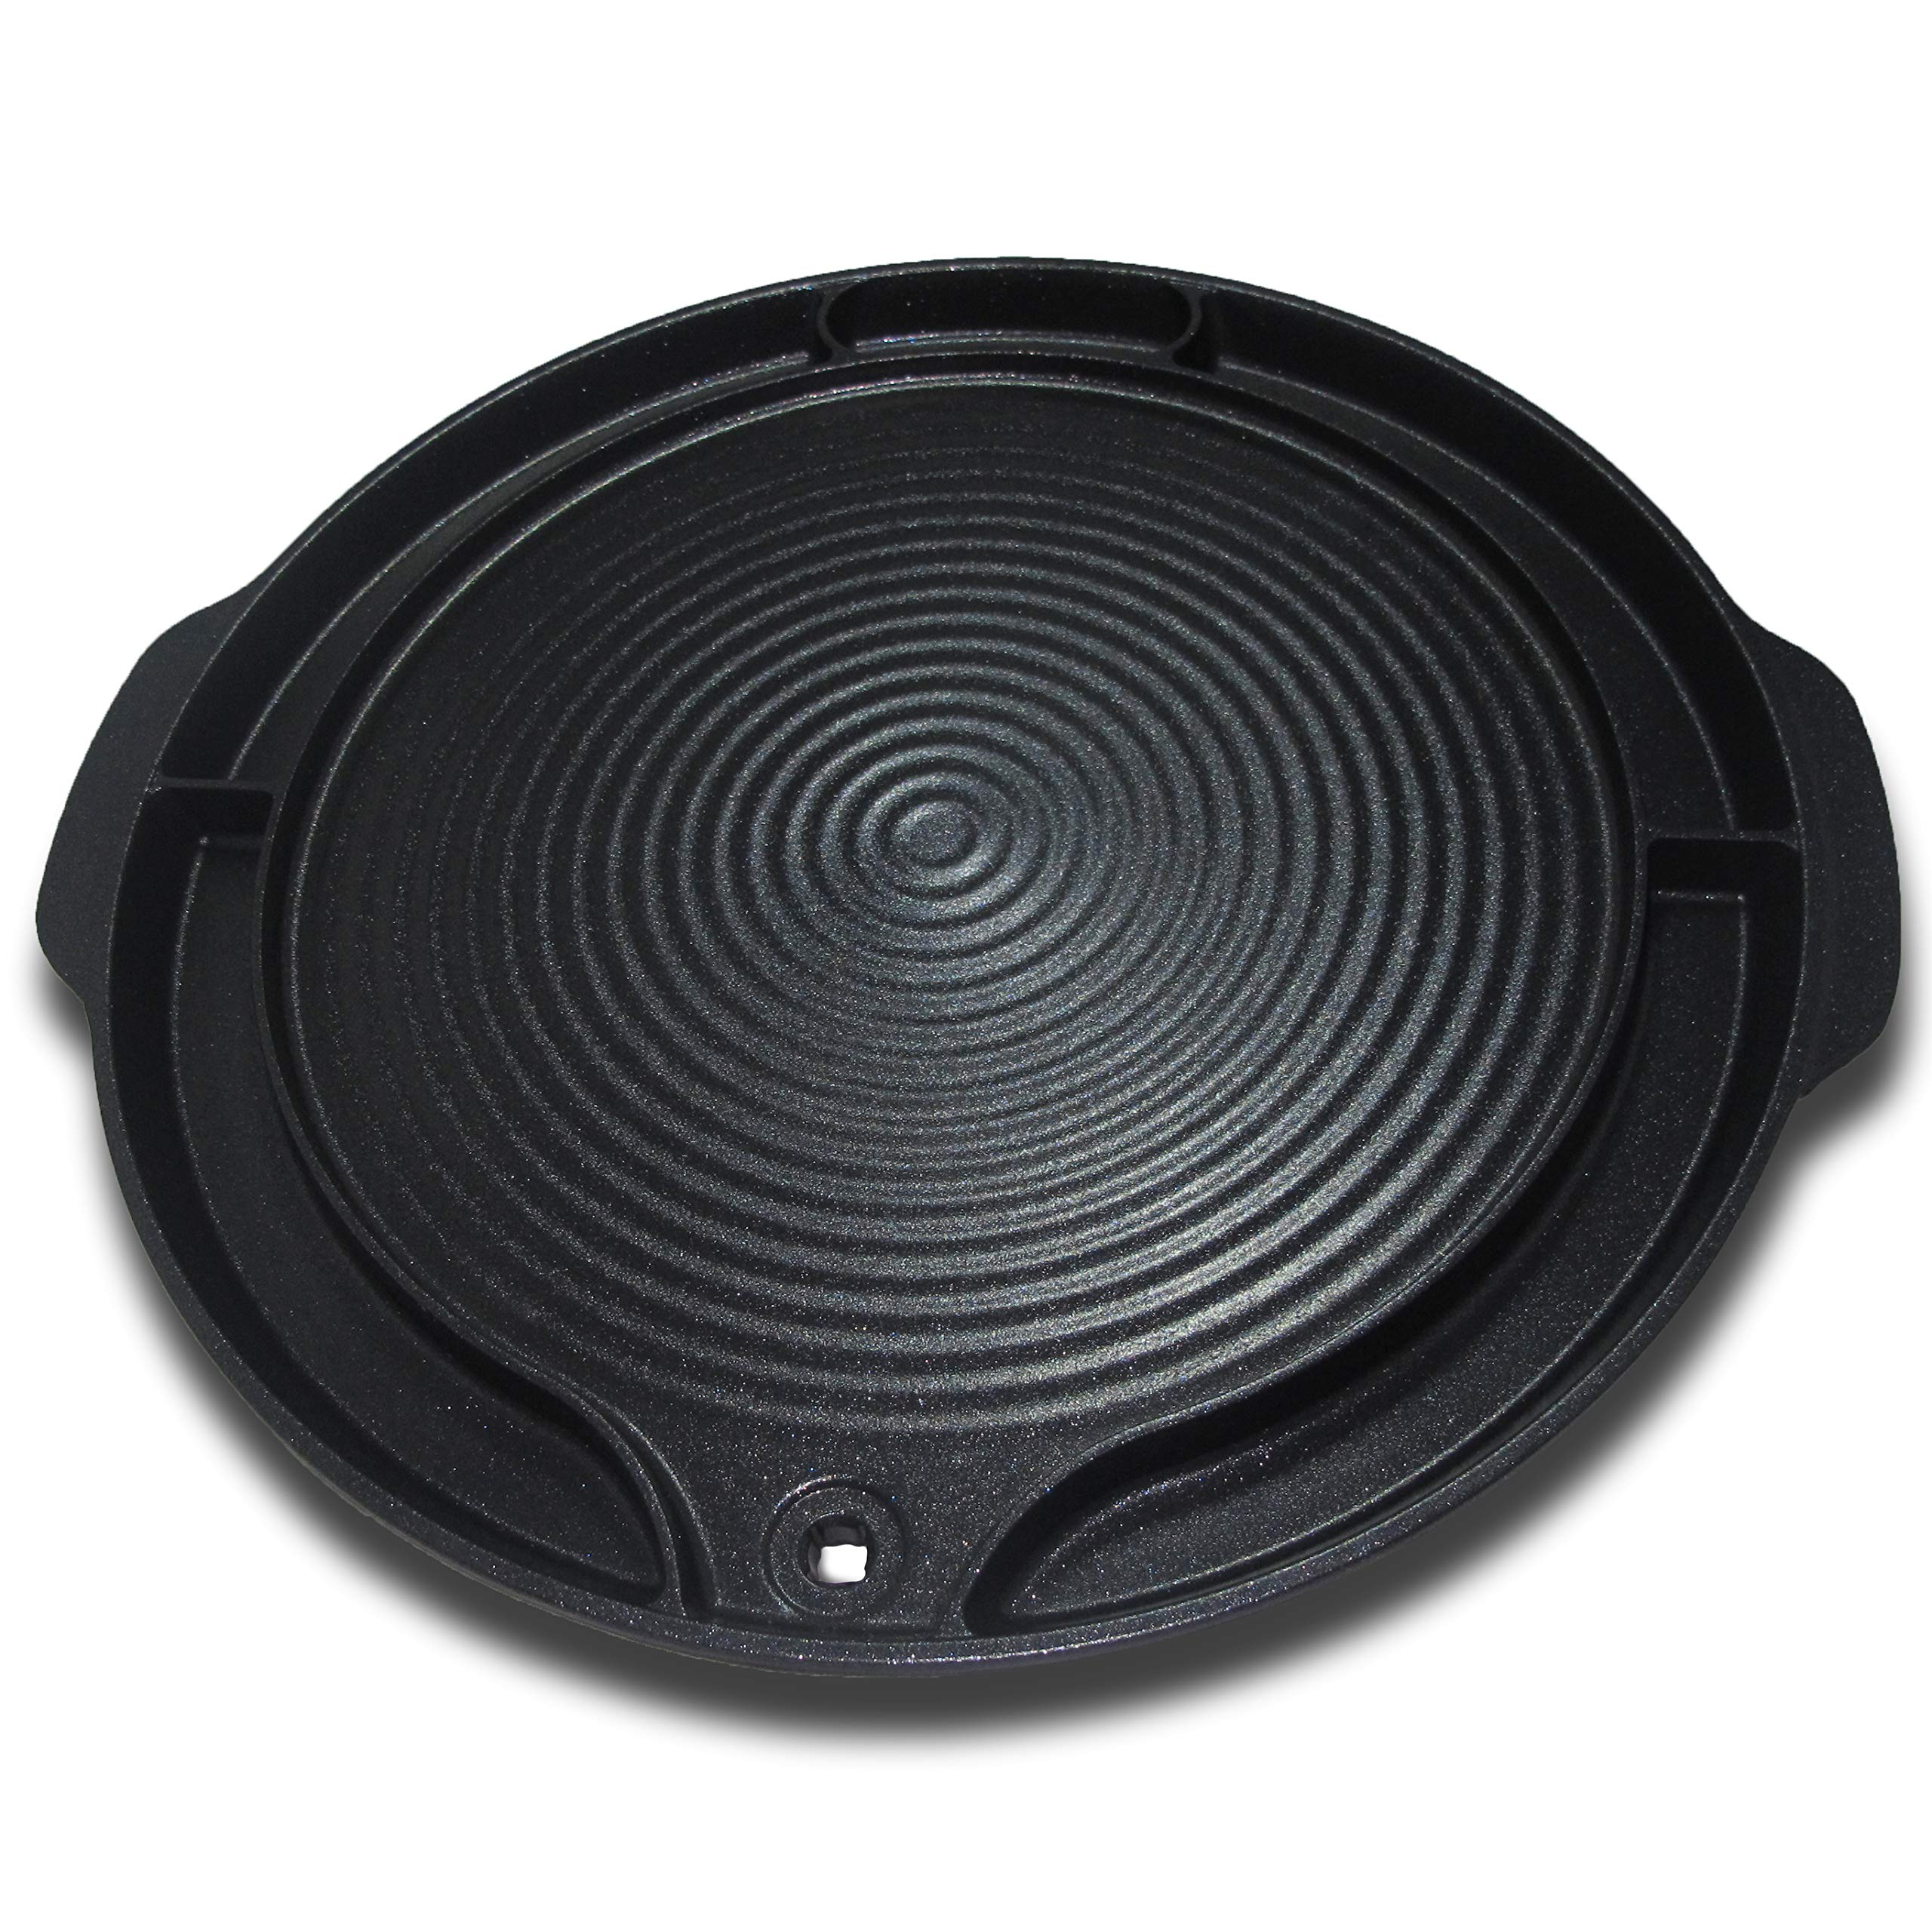 Tomoroo - Stove Top Korean BBQ Grill Pan - Non Stick Portable Barbeque Grilling Griddle Plate for Indoor and Outdoor